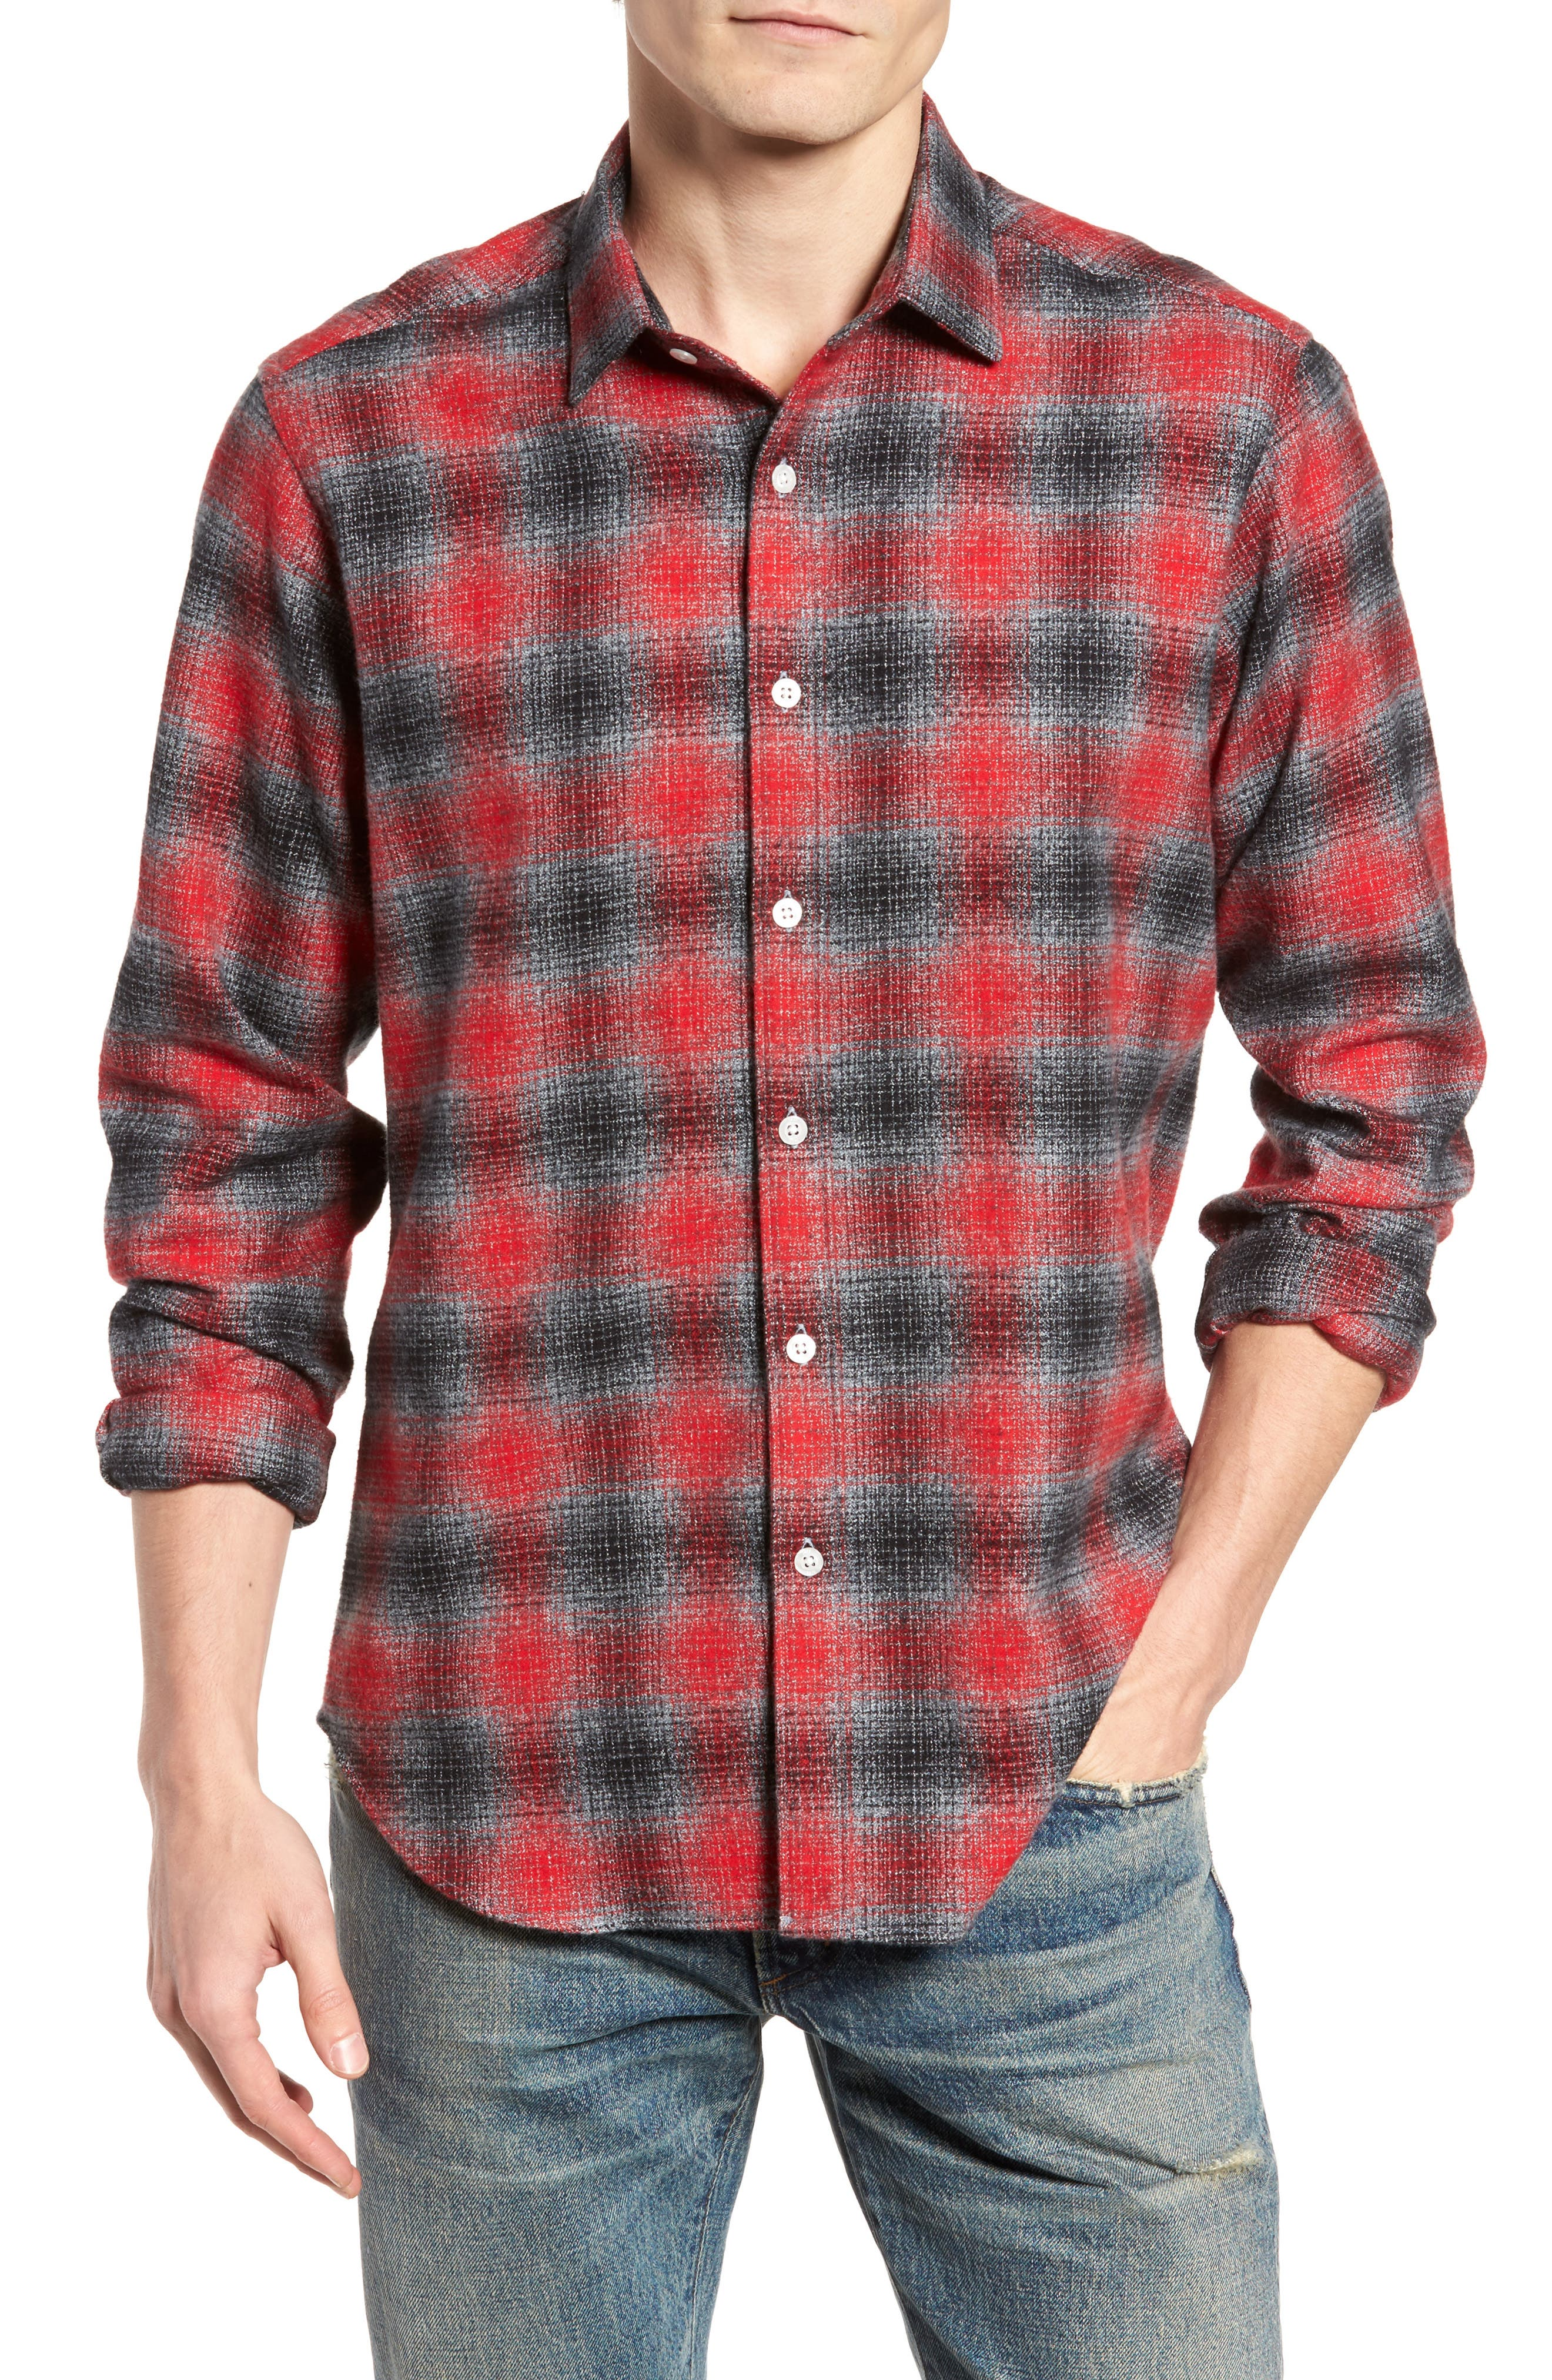 Stowe Slim Fit Plaid Sport Shirt,                             Main thumbnail 1, color,                             Platnium Grey